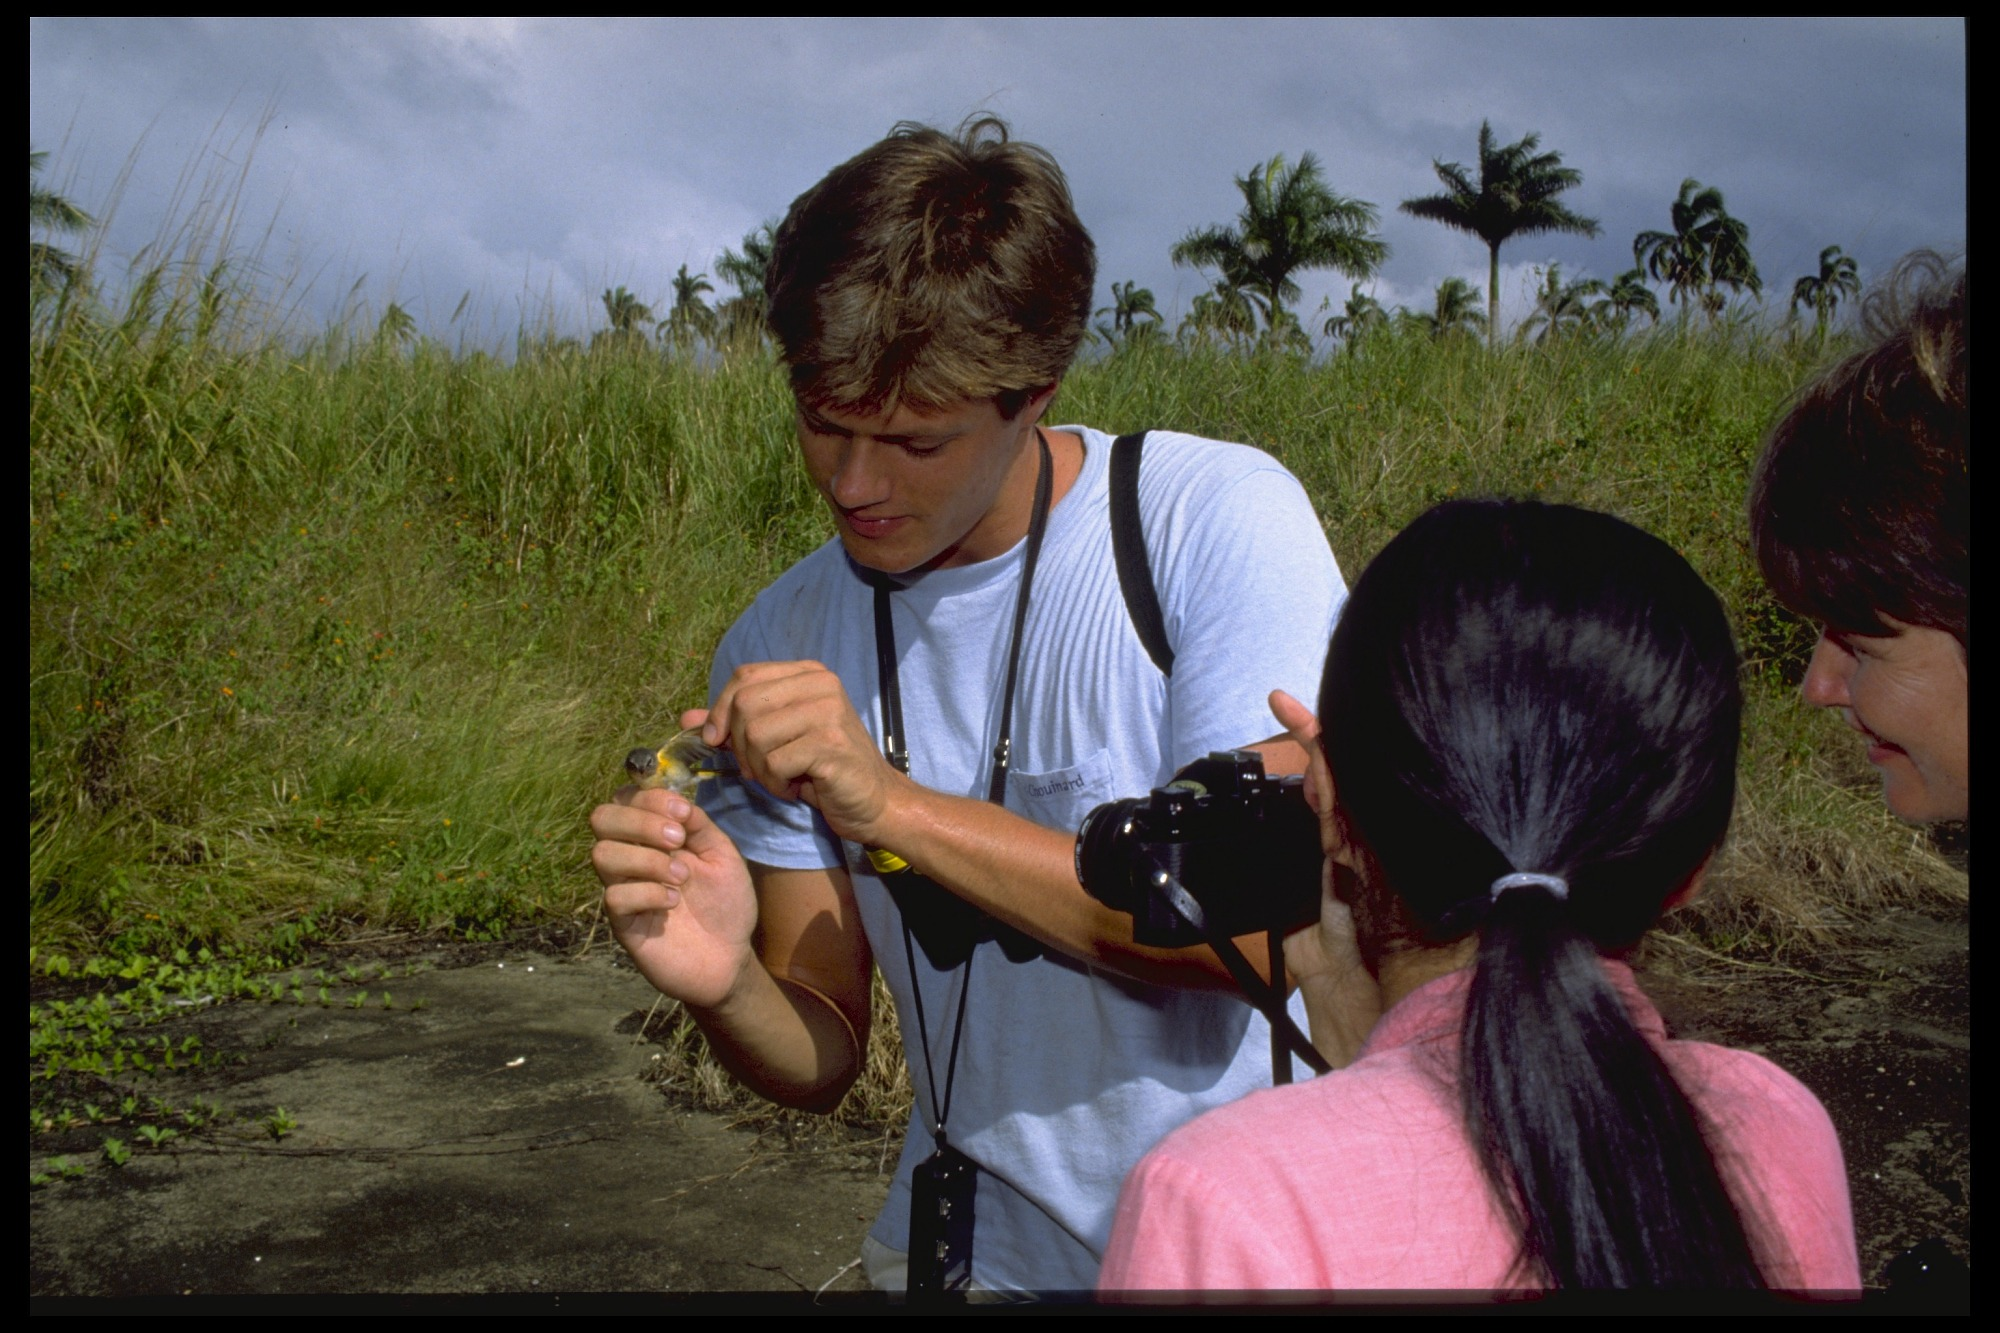 images for Mist Netting of Tropical Birds, Panama, STRI